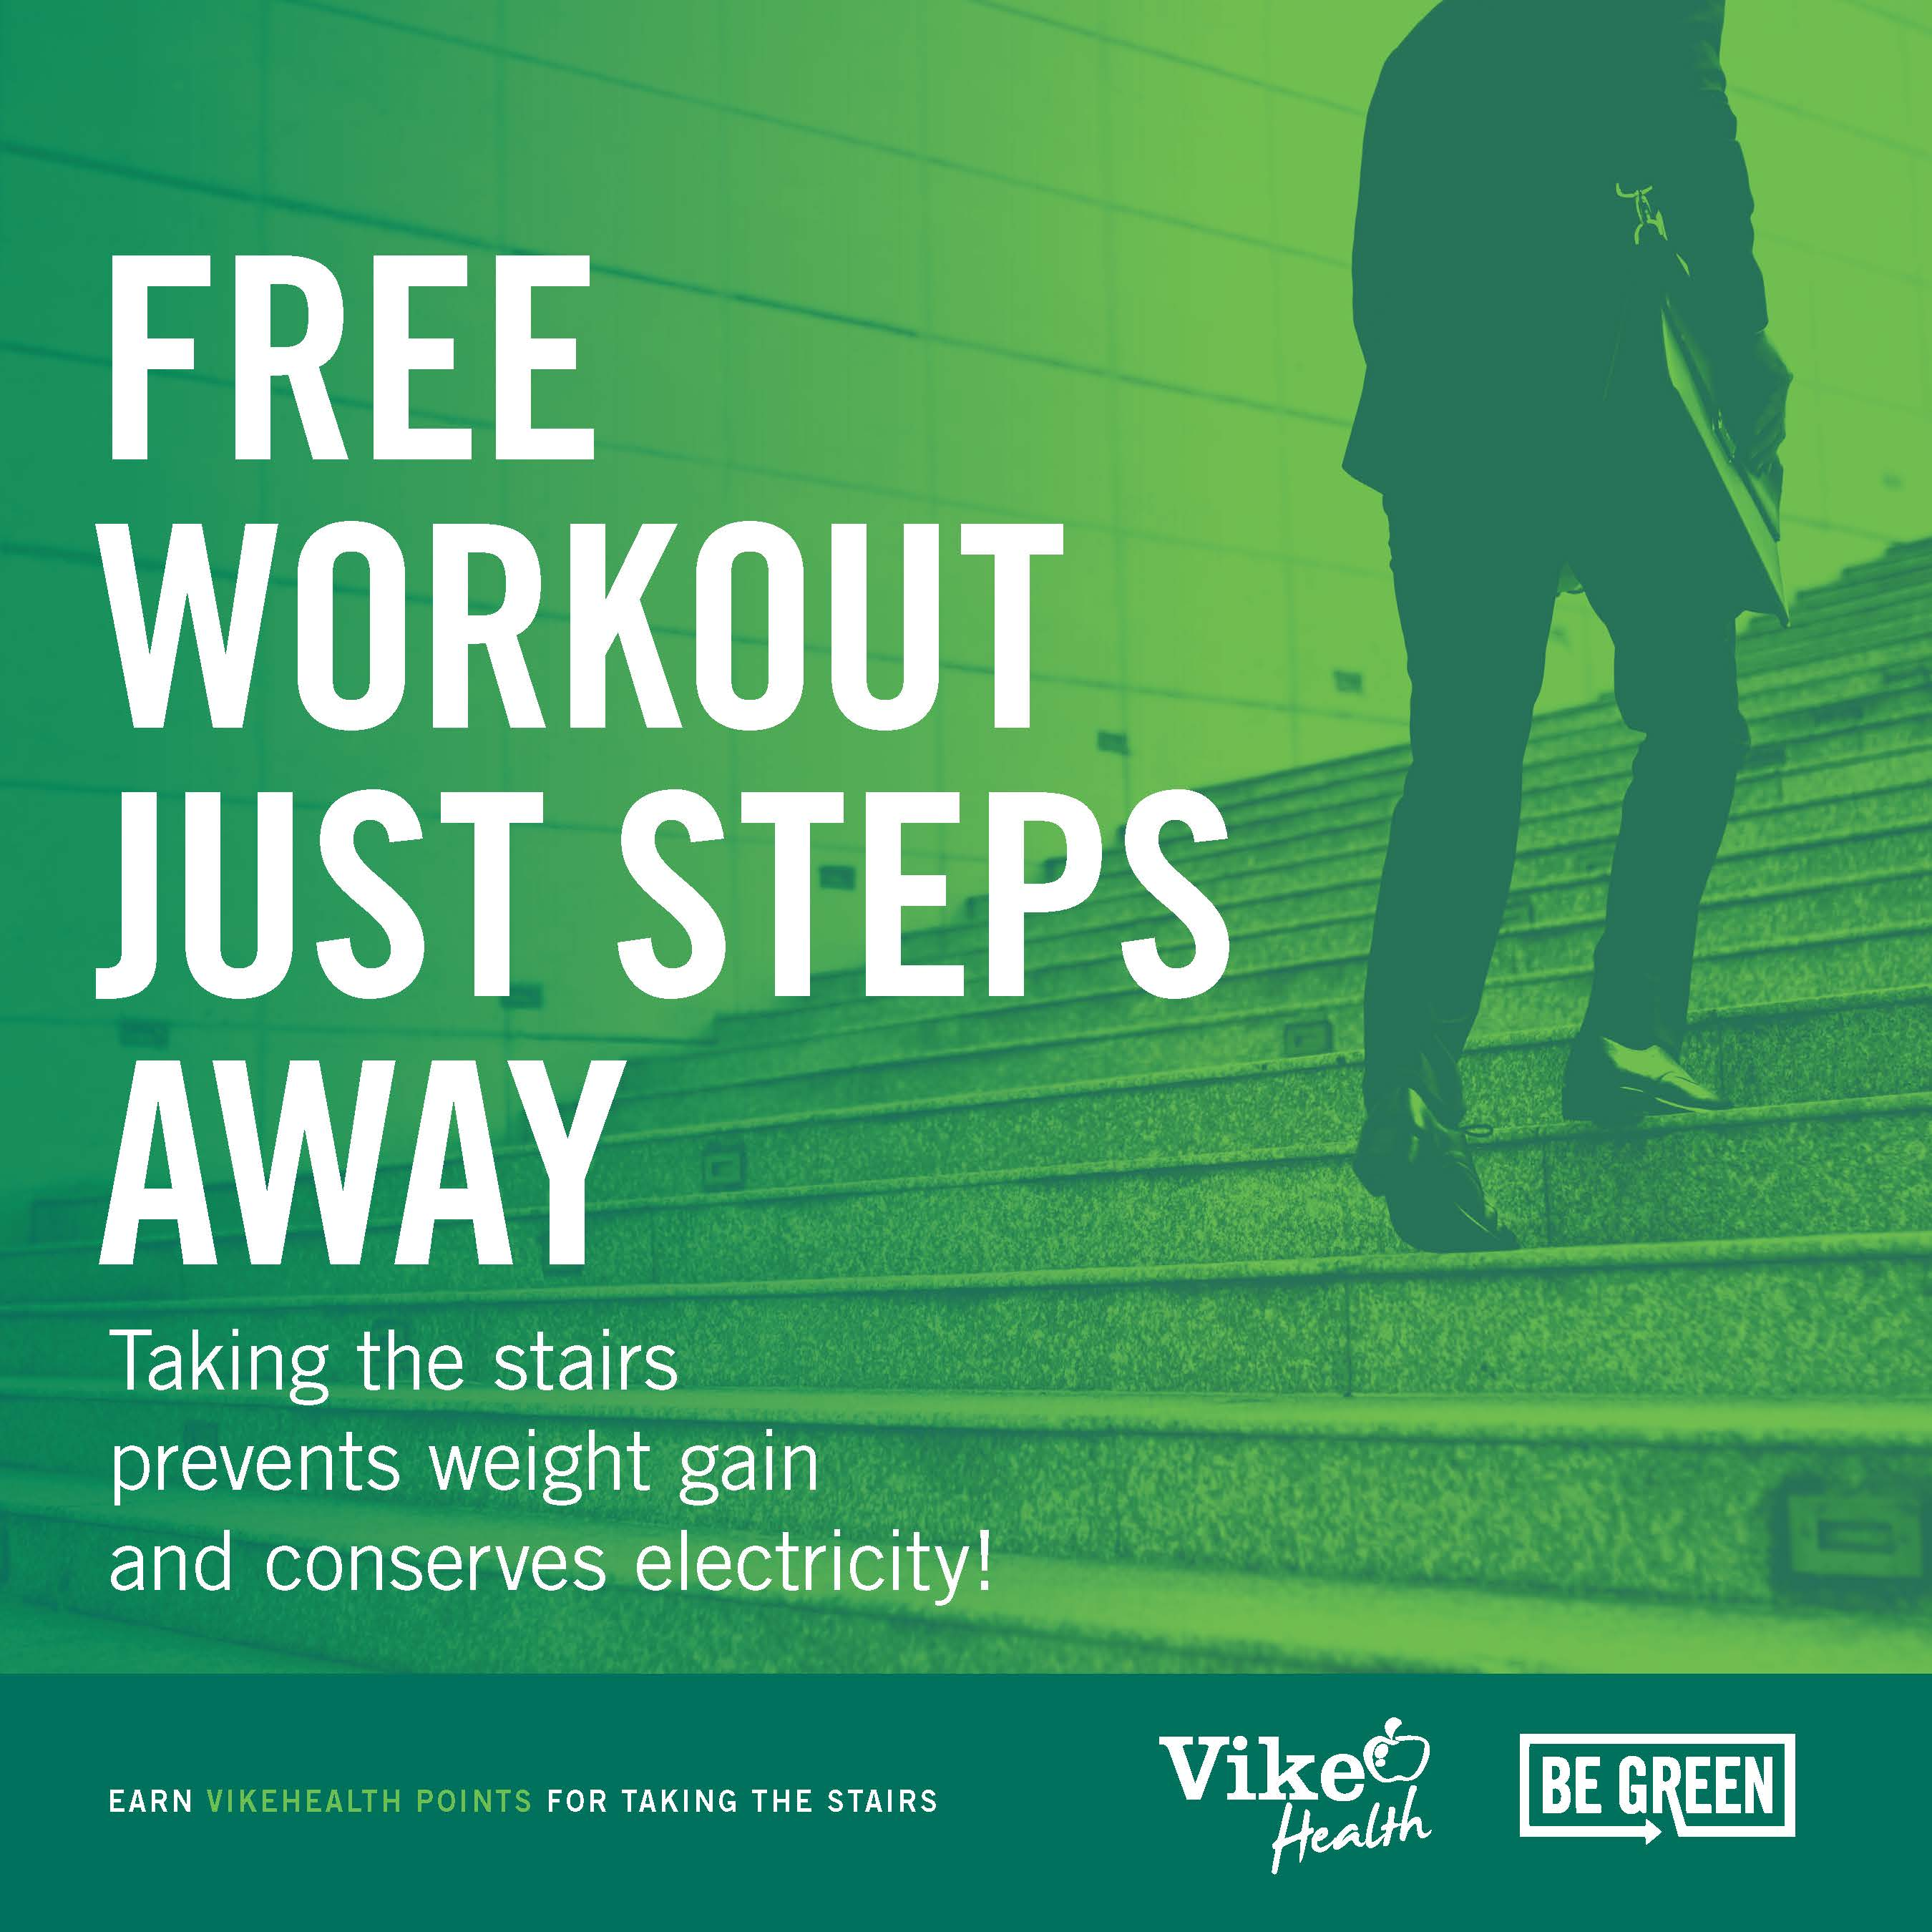 Free Workout Just Steps Away